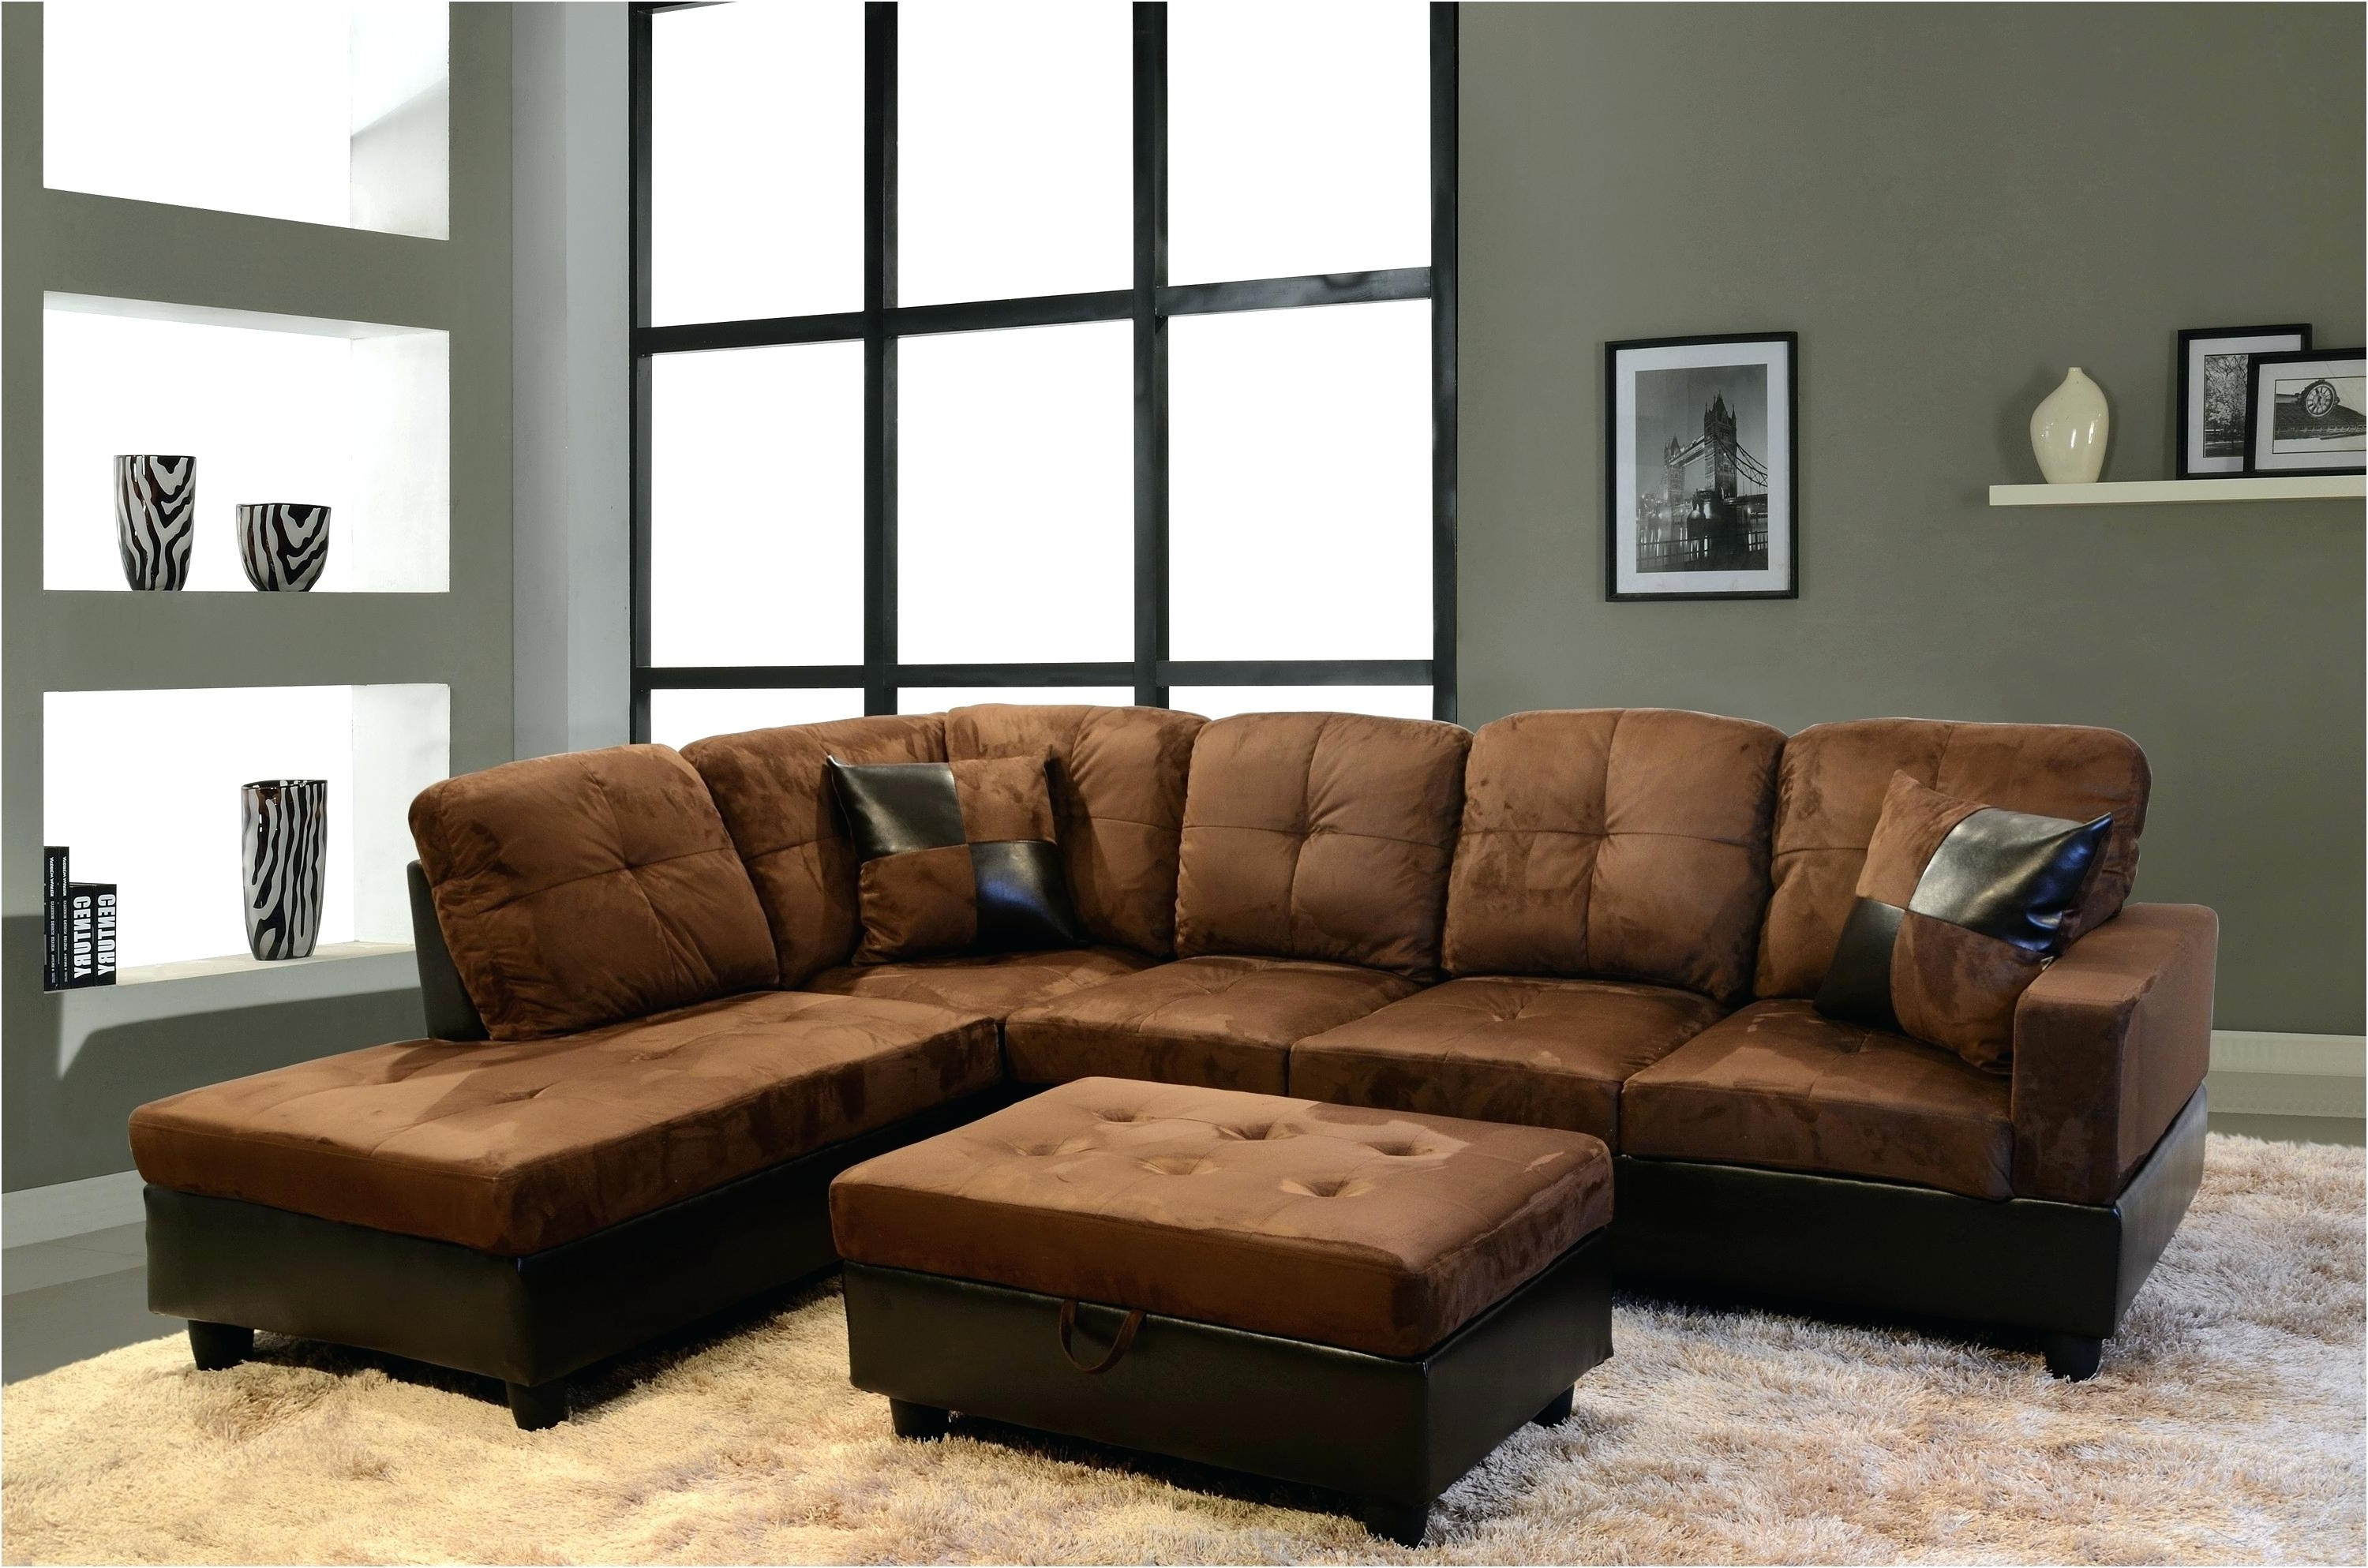 Sectionals For Cheap Sa Sas Sectional Sofas Under 500 Canada Sale With Current Canada Sale Sectional Sofas (View 19 of 20)